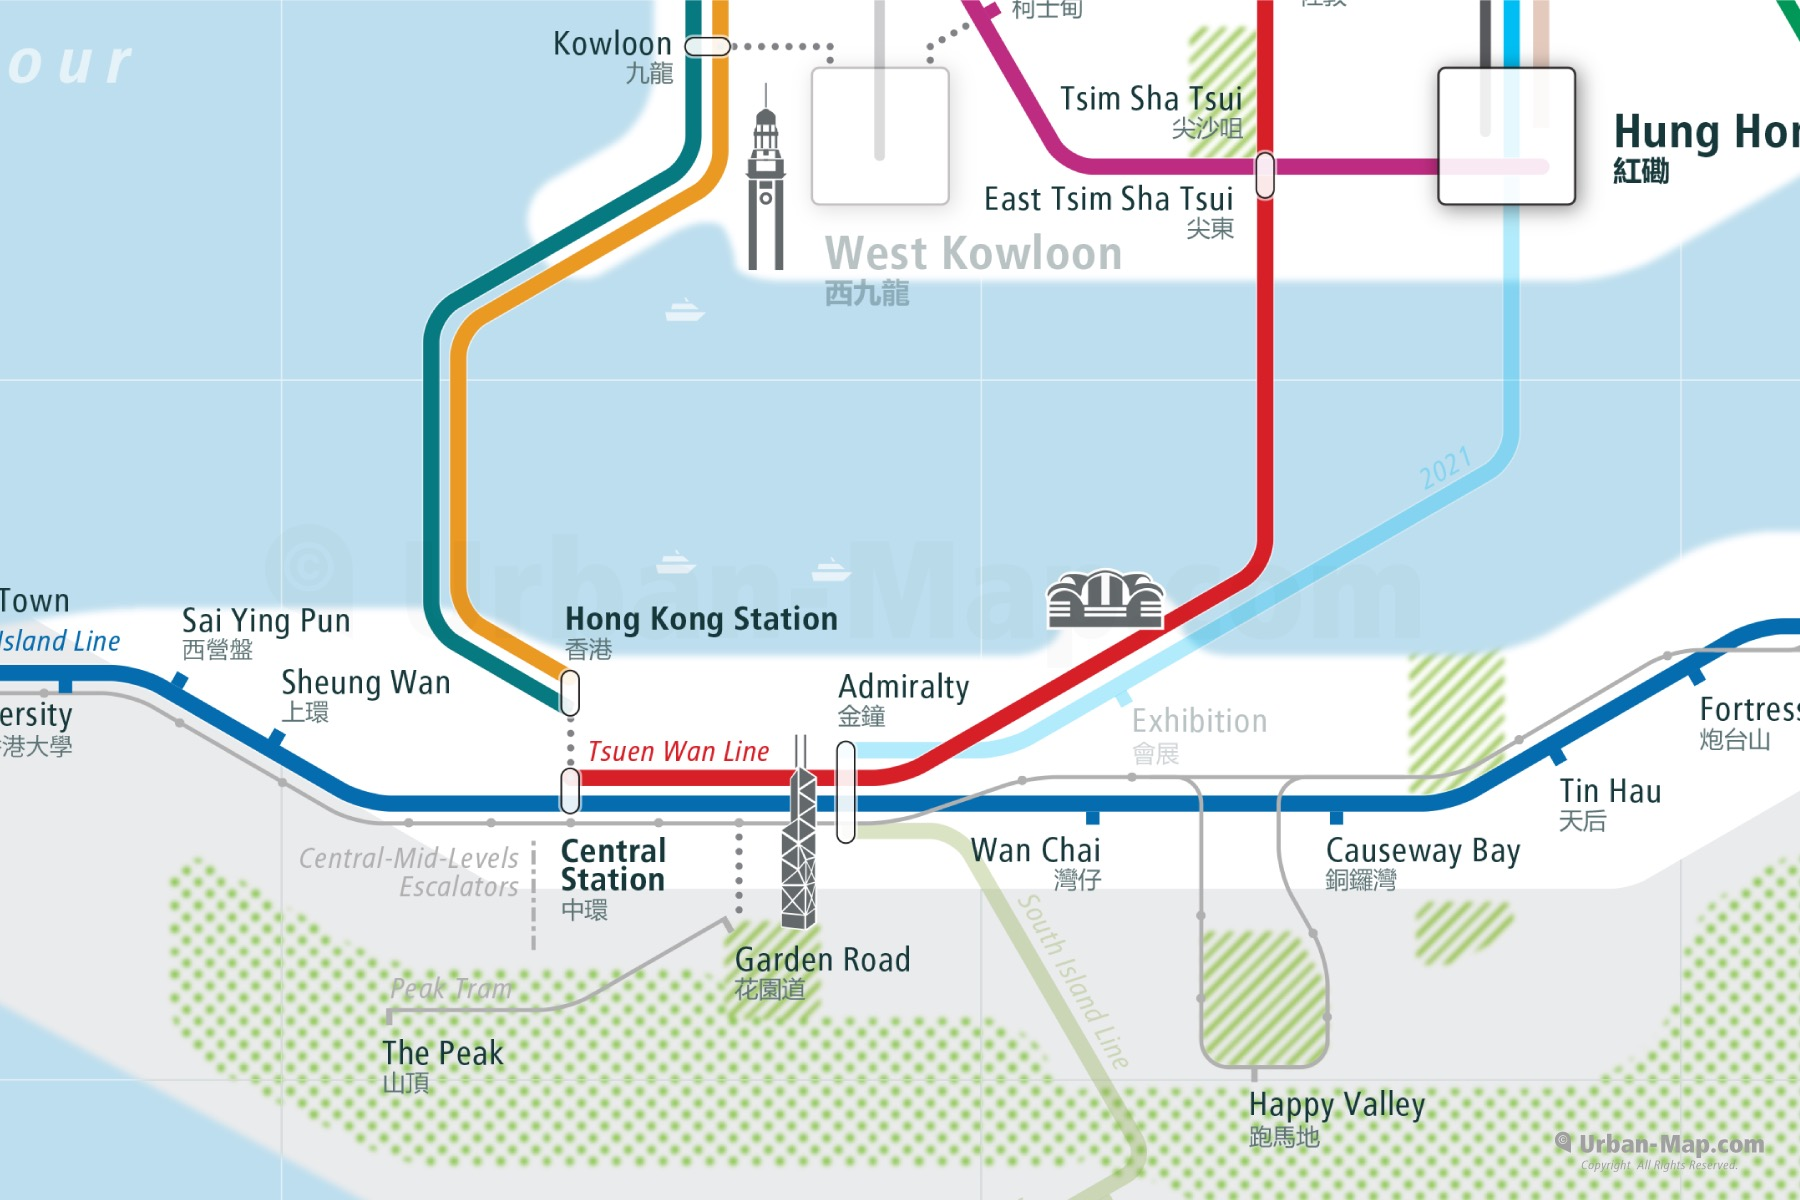 Hong Kong City Rail Map shows the train and public transportation routes of metro - Close-Up